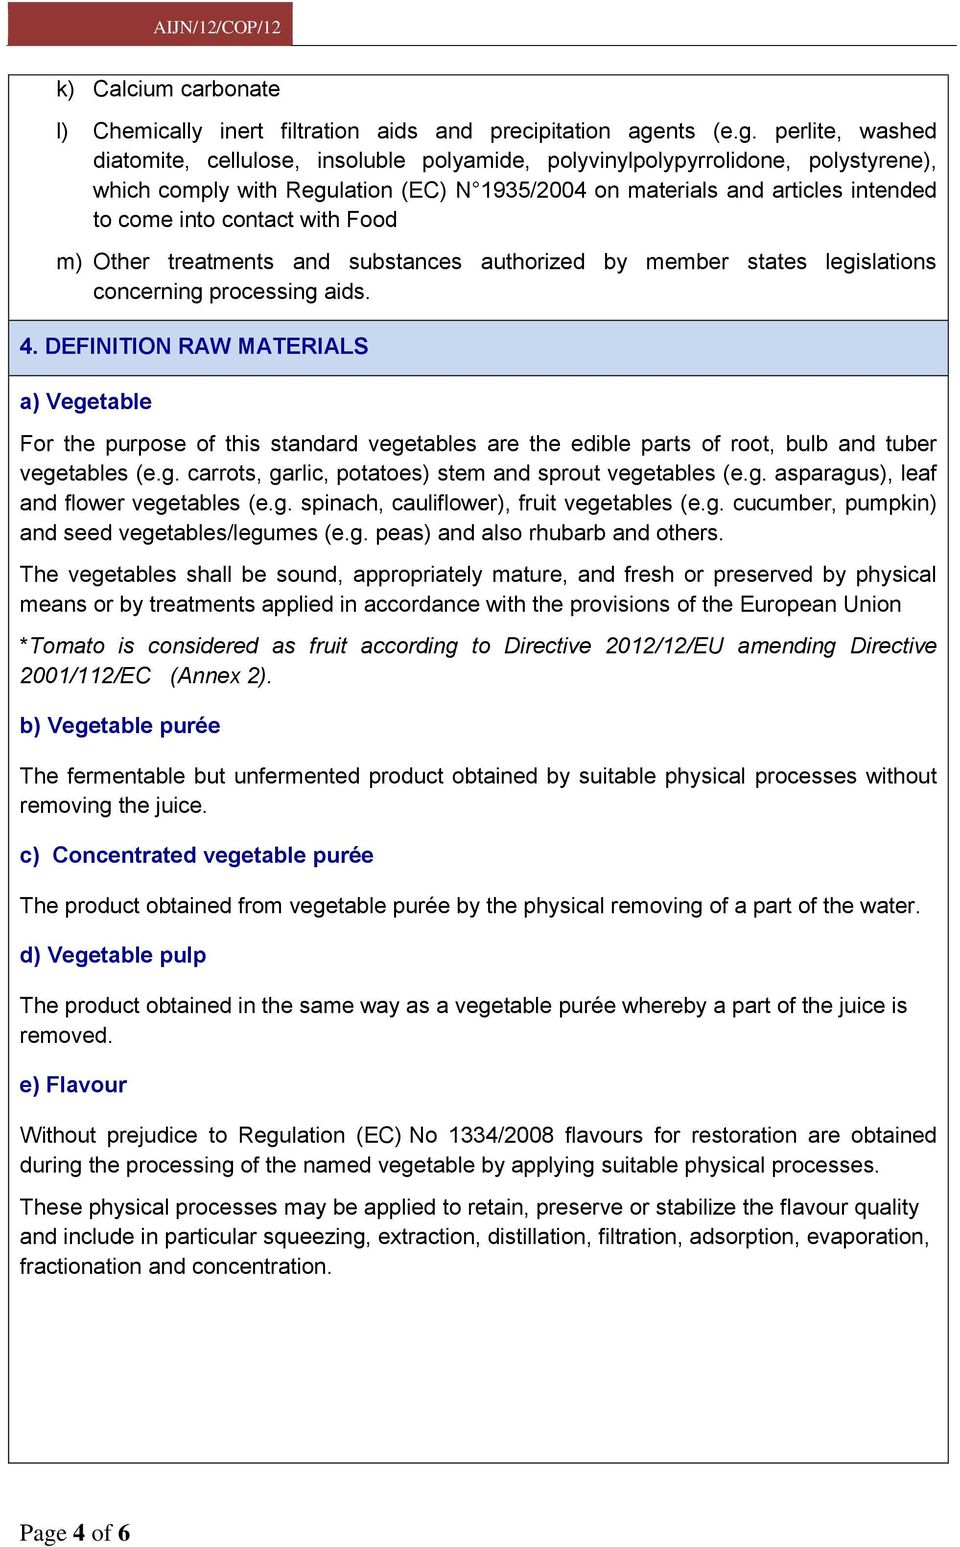 perlite, washed diatomite, cellulose, insoluble polyamide, polyvinylpolypyrrolidone, polystyrene), which comply with Regulation (EC) N 1935/2004 on materials and articles intended to come into